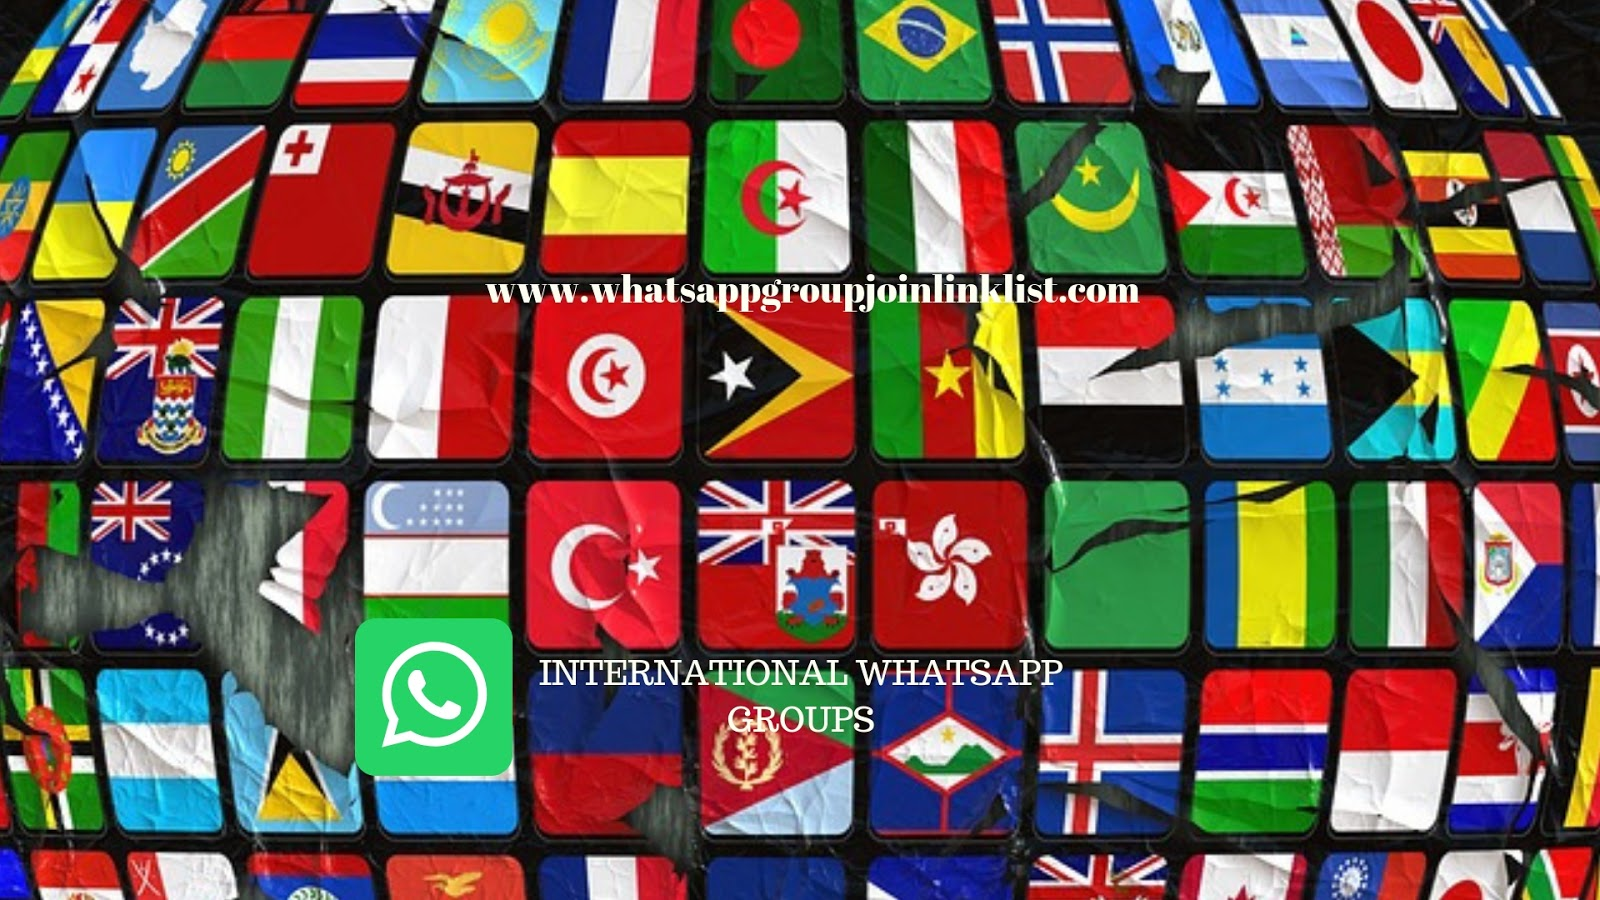 International WhatsApp Group Join Link List